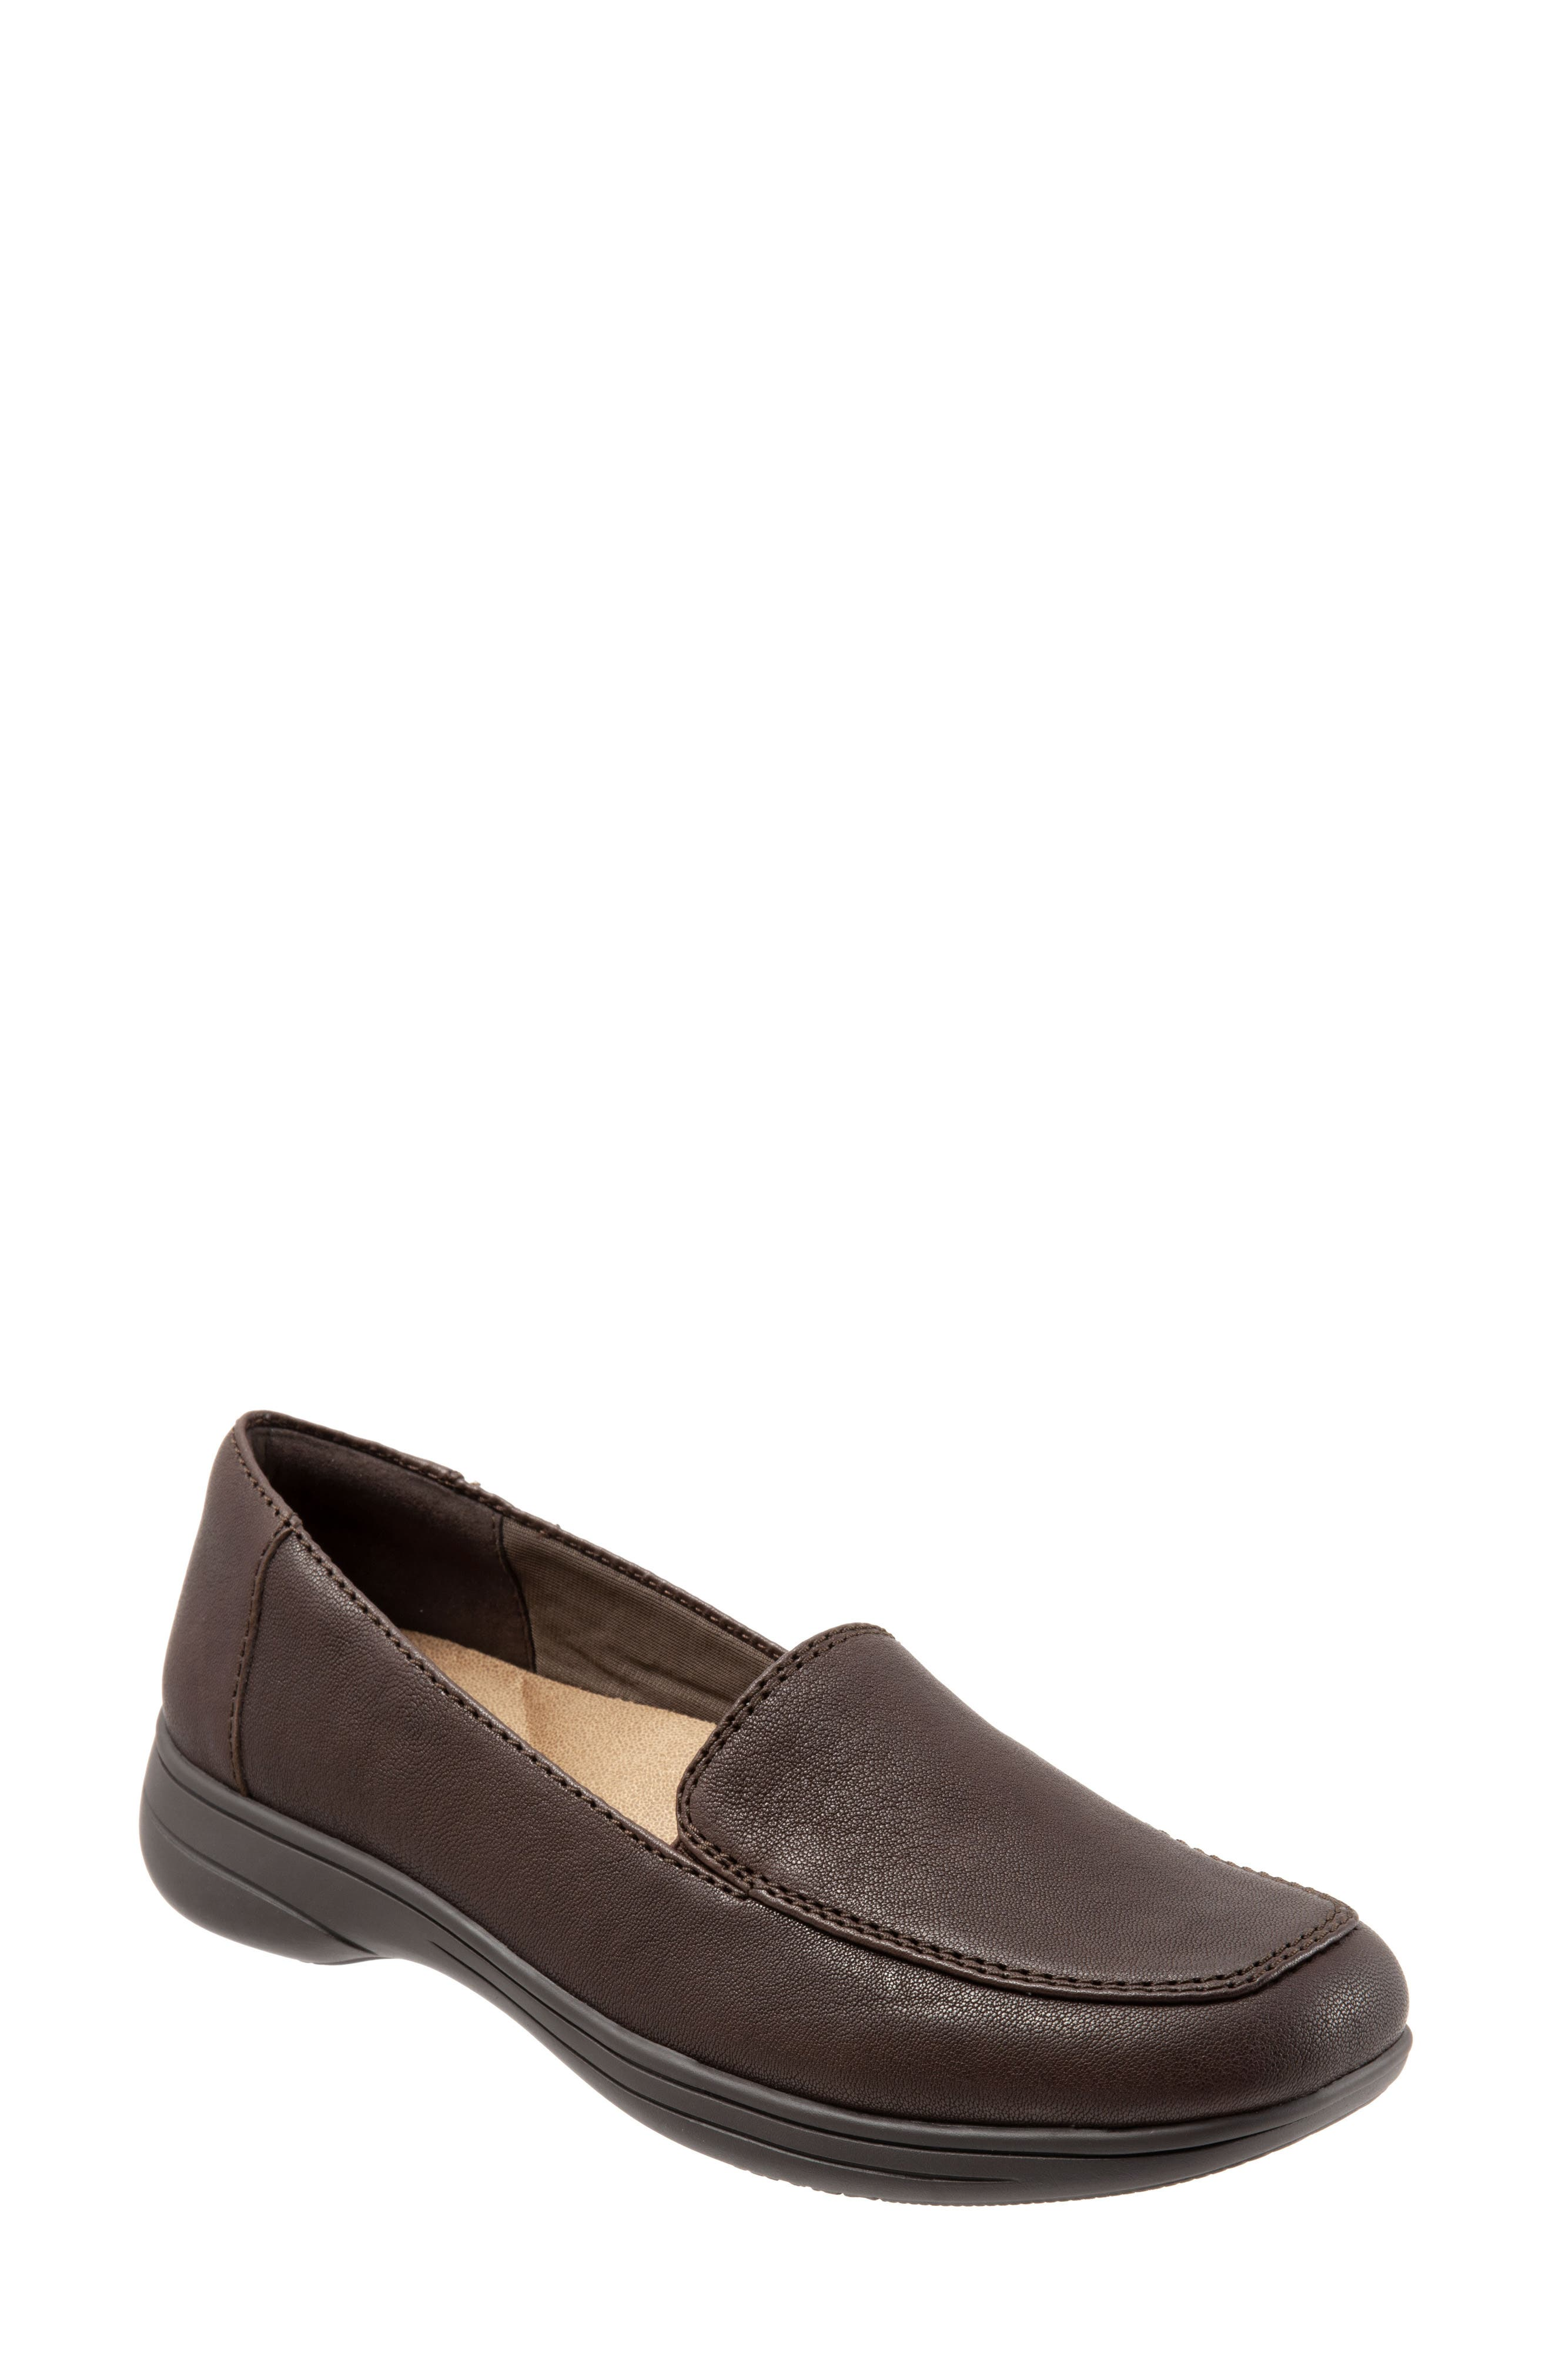 Jacob Loafer,                         Main,                         color, DARK BROWN LEATHER